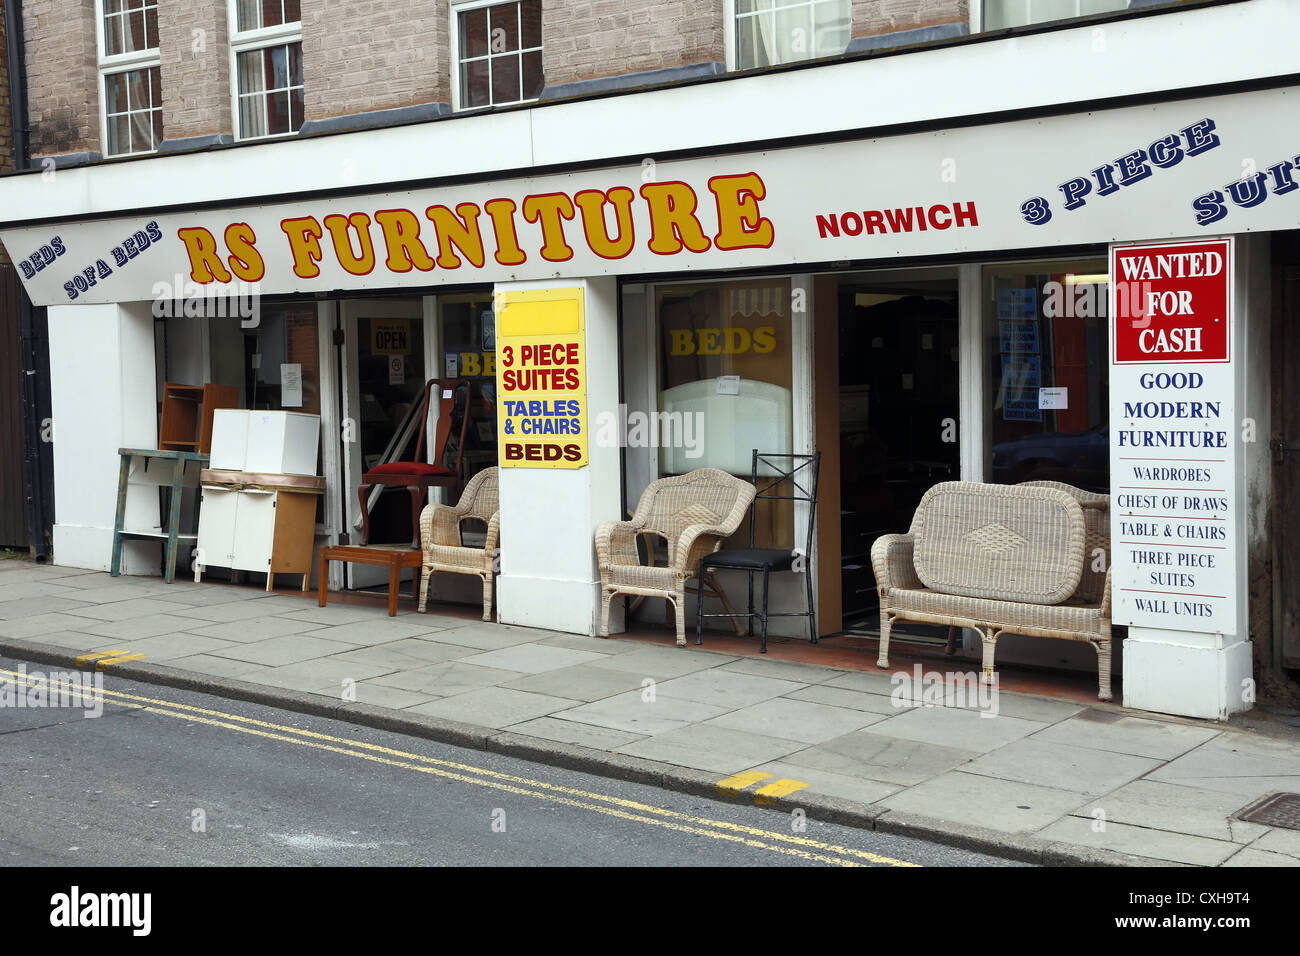 Secondhand furniture shop in Norwich, UK. - Stock Image